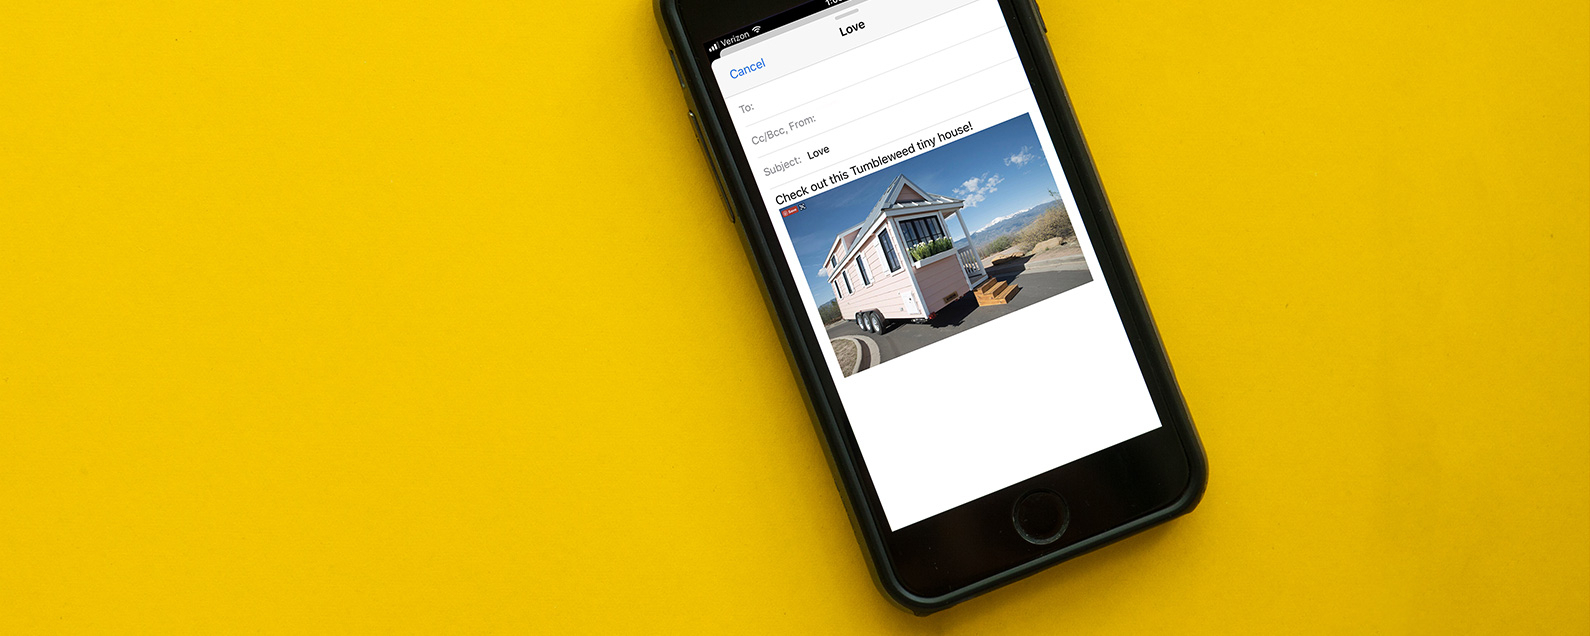 How To Add Attachments In Mail On The Iphone in Mail Icon Missing From Iphone